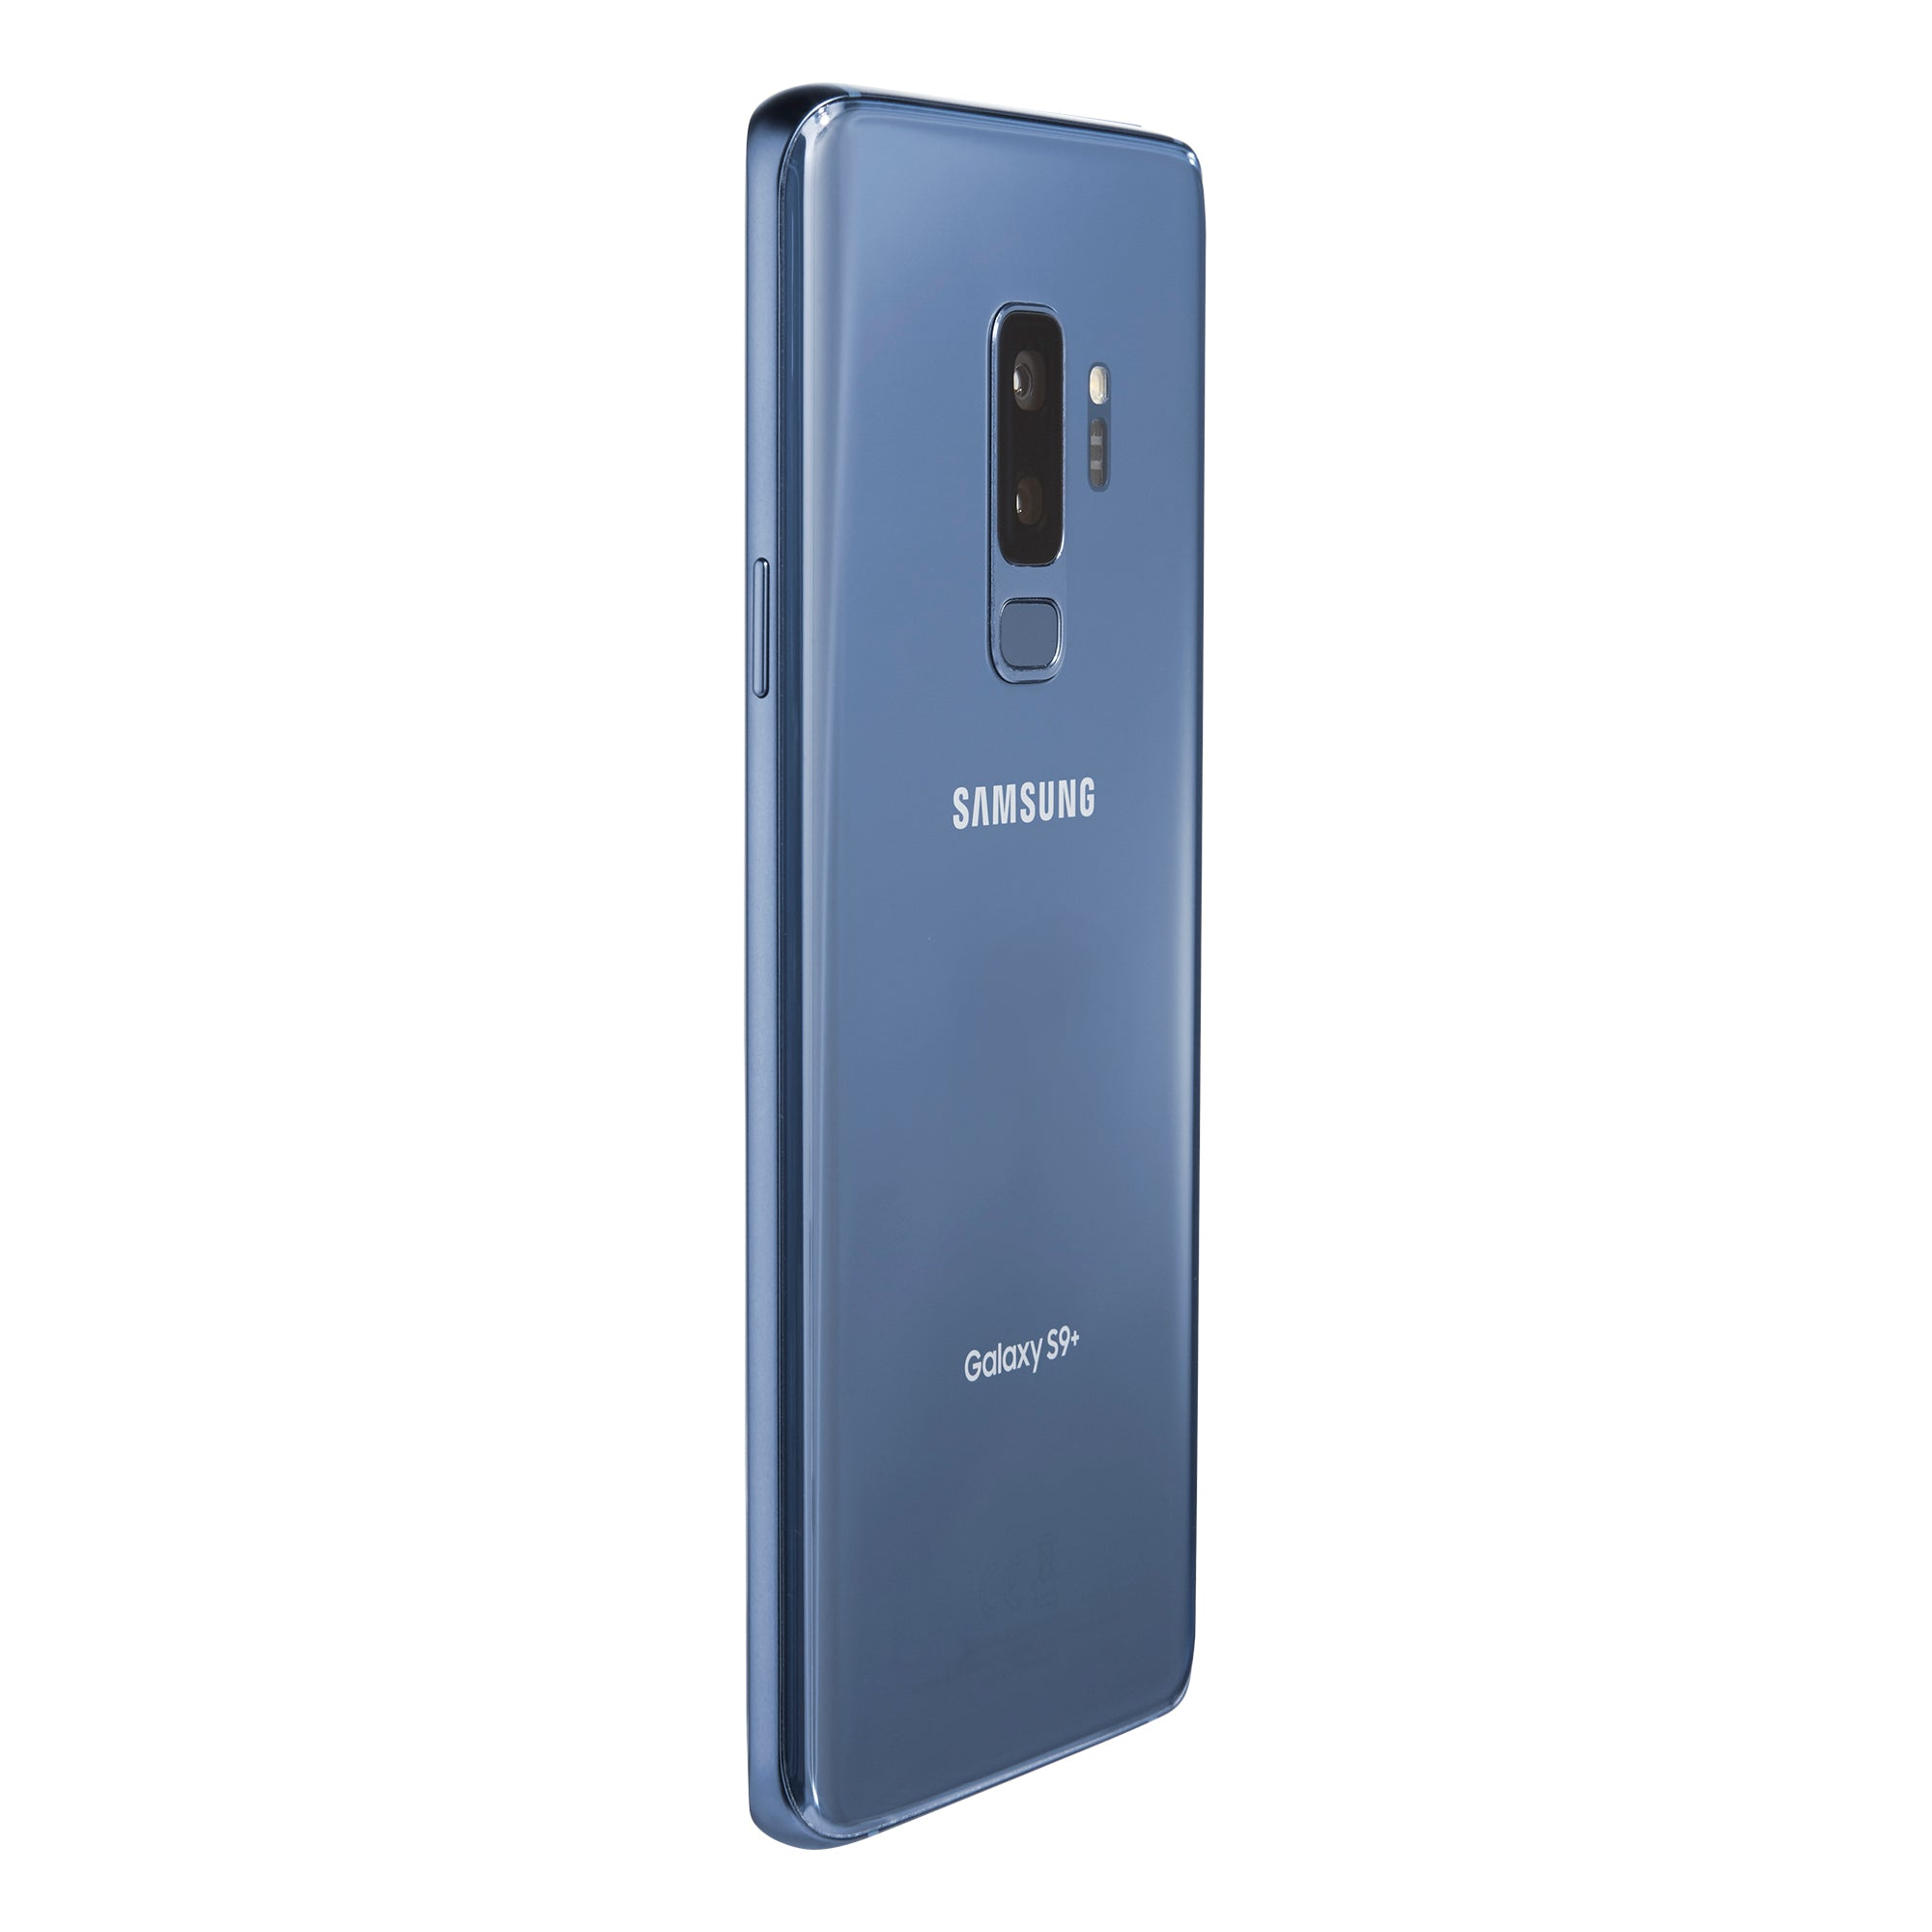 Samsung Galaxy S9 SM-G960U 64GB for AT&T